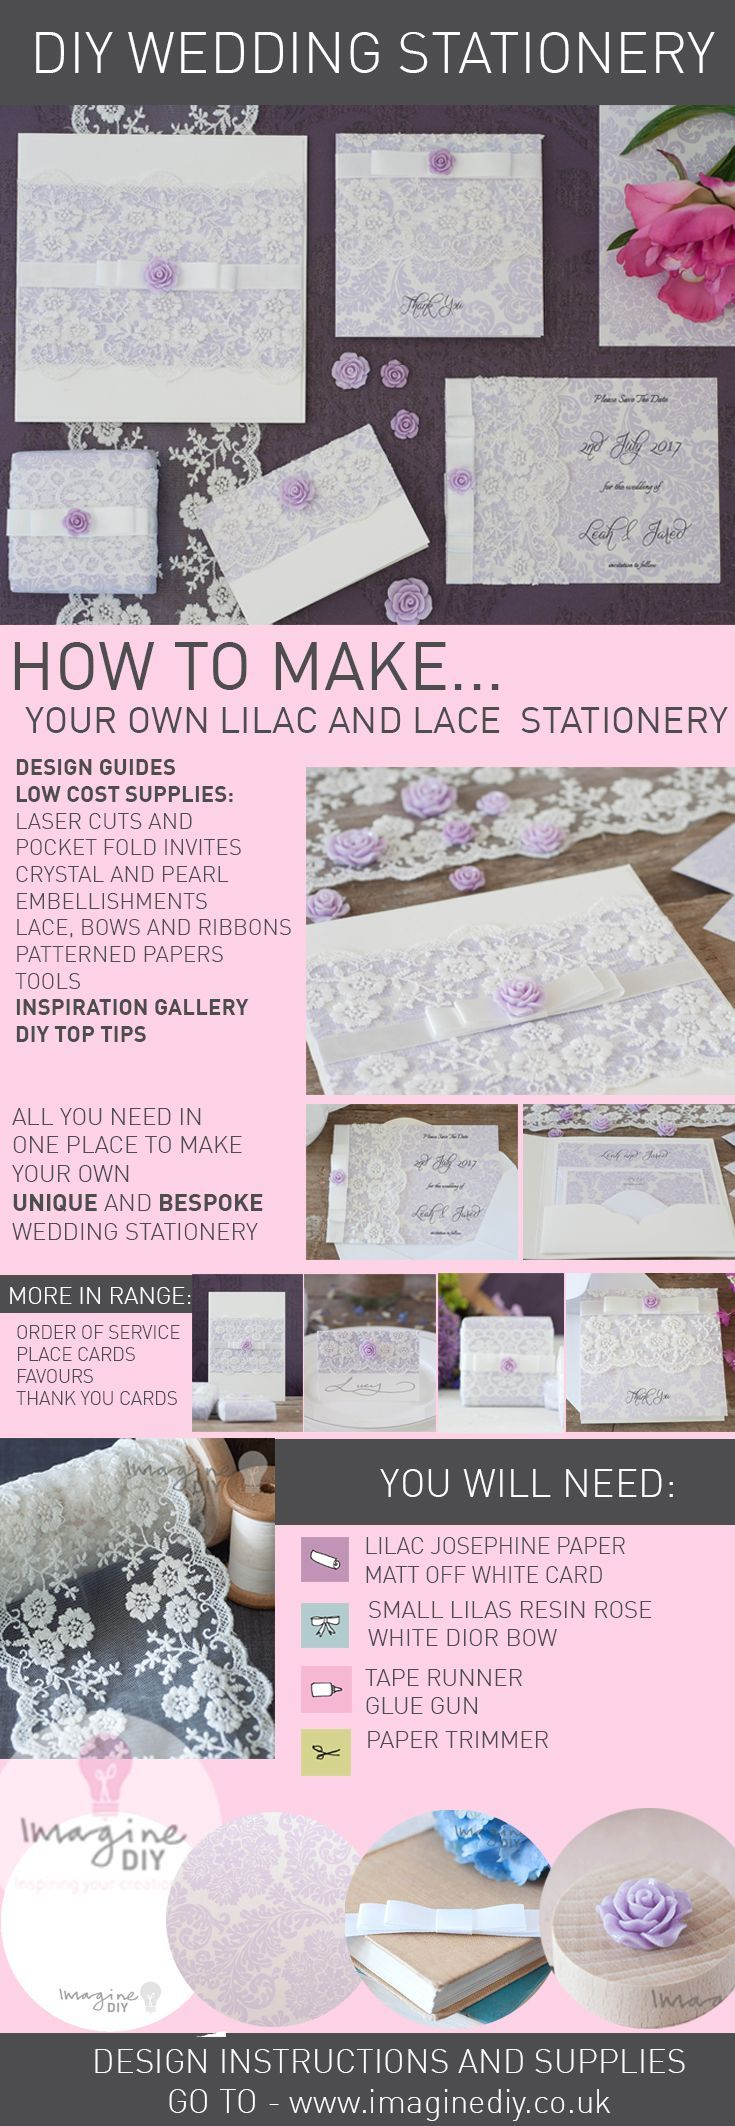 make lilac and lace diy wedding stationery.  DIY wedding stationery products supplies and instructions from www.imaginediy.co.uk  lilac wedding, diy wedding stationery, lilac wedding stationery, lace wedding, lace invitations, imaginediy, diy wedding ideas  #imaginediy #lilacwedding #lacewedding #diywedding #diyweddingstationery #laceweddingstationery #laceweddinginvitations #diyweddingideas #weddingideas #lilacweddingideas #prettywedding #weddinginvitations #diyinvitations #diyinvites